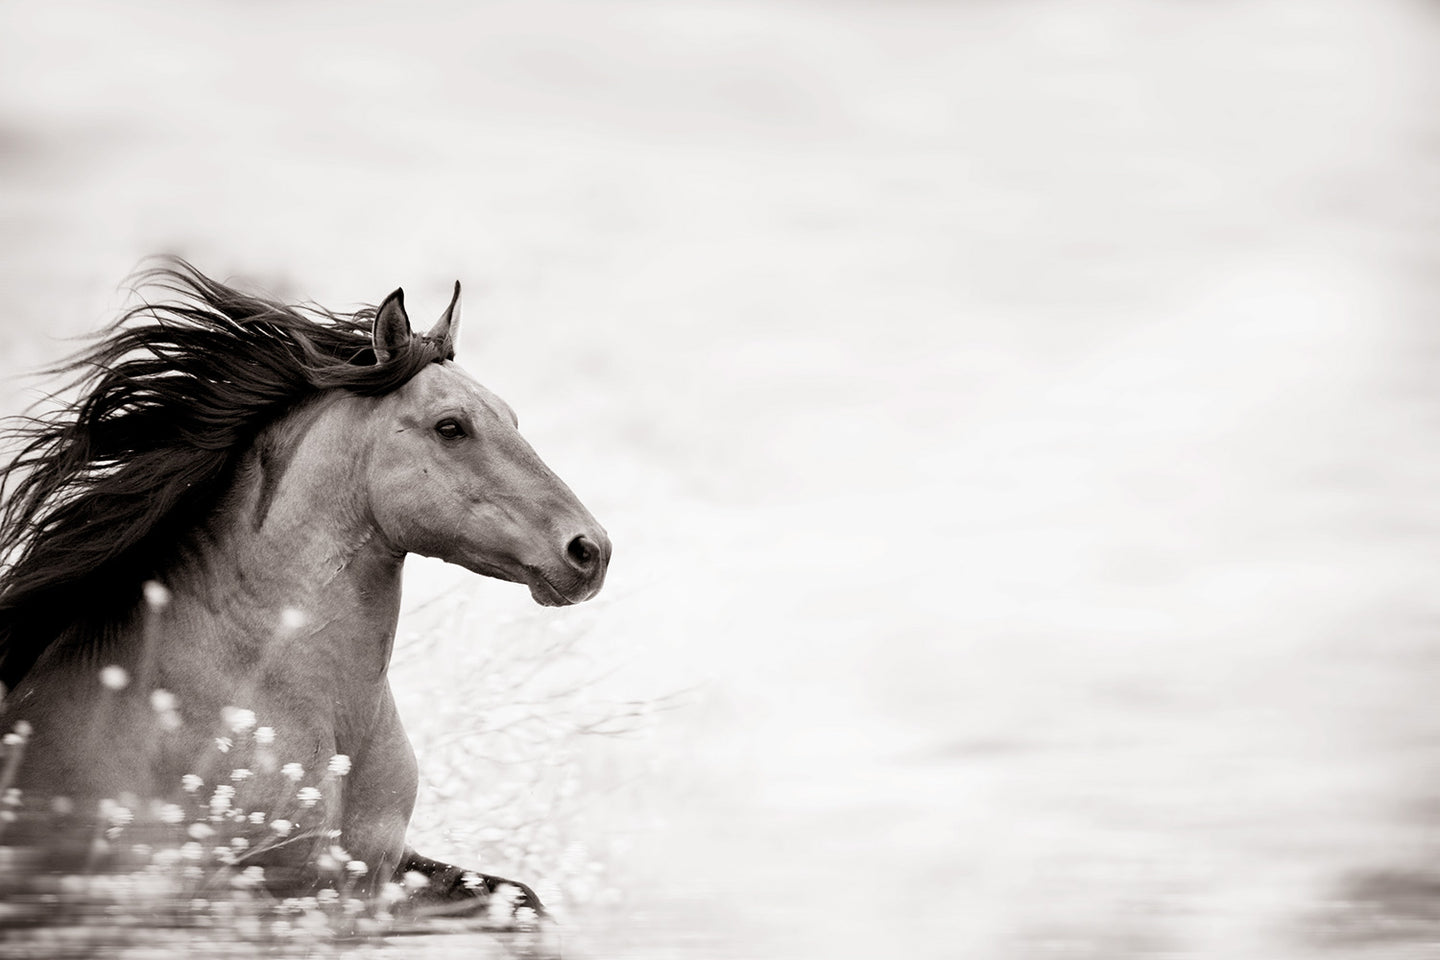 Wild at Heart, Sulpher Springs Stallion, 2010